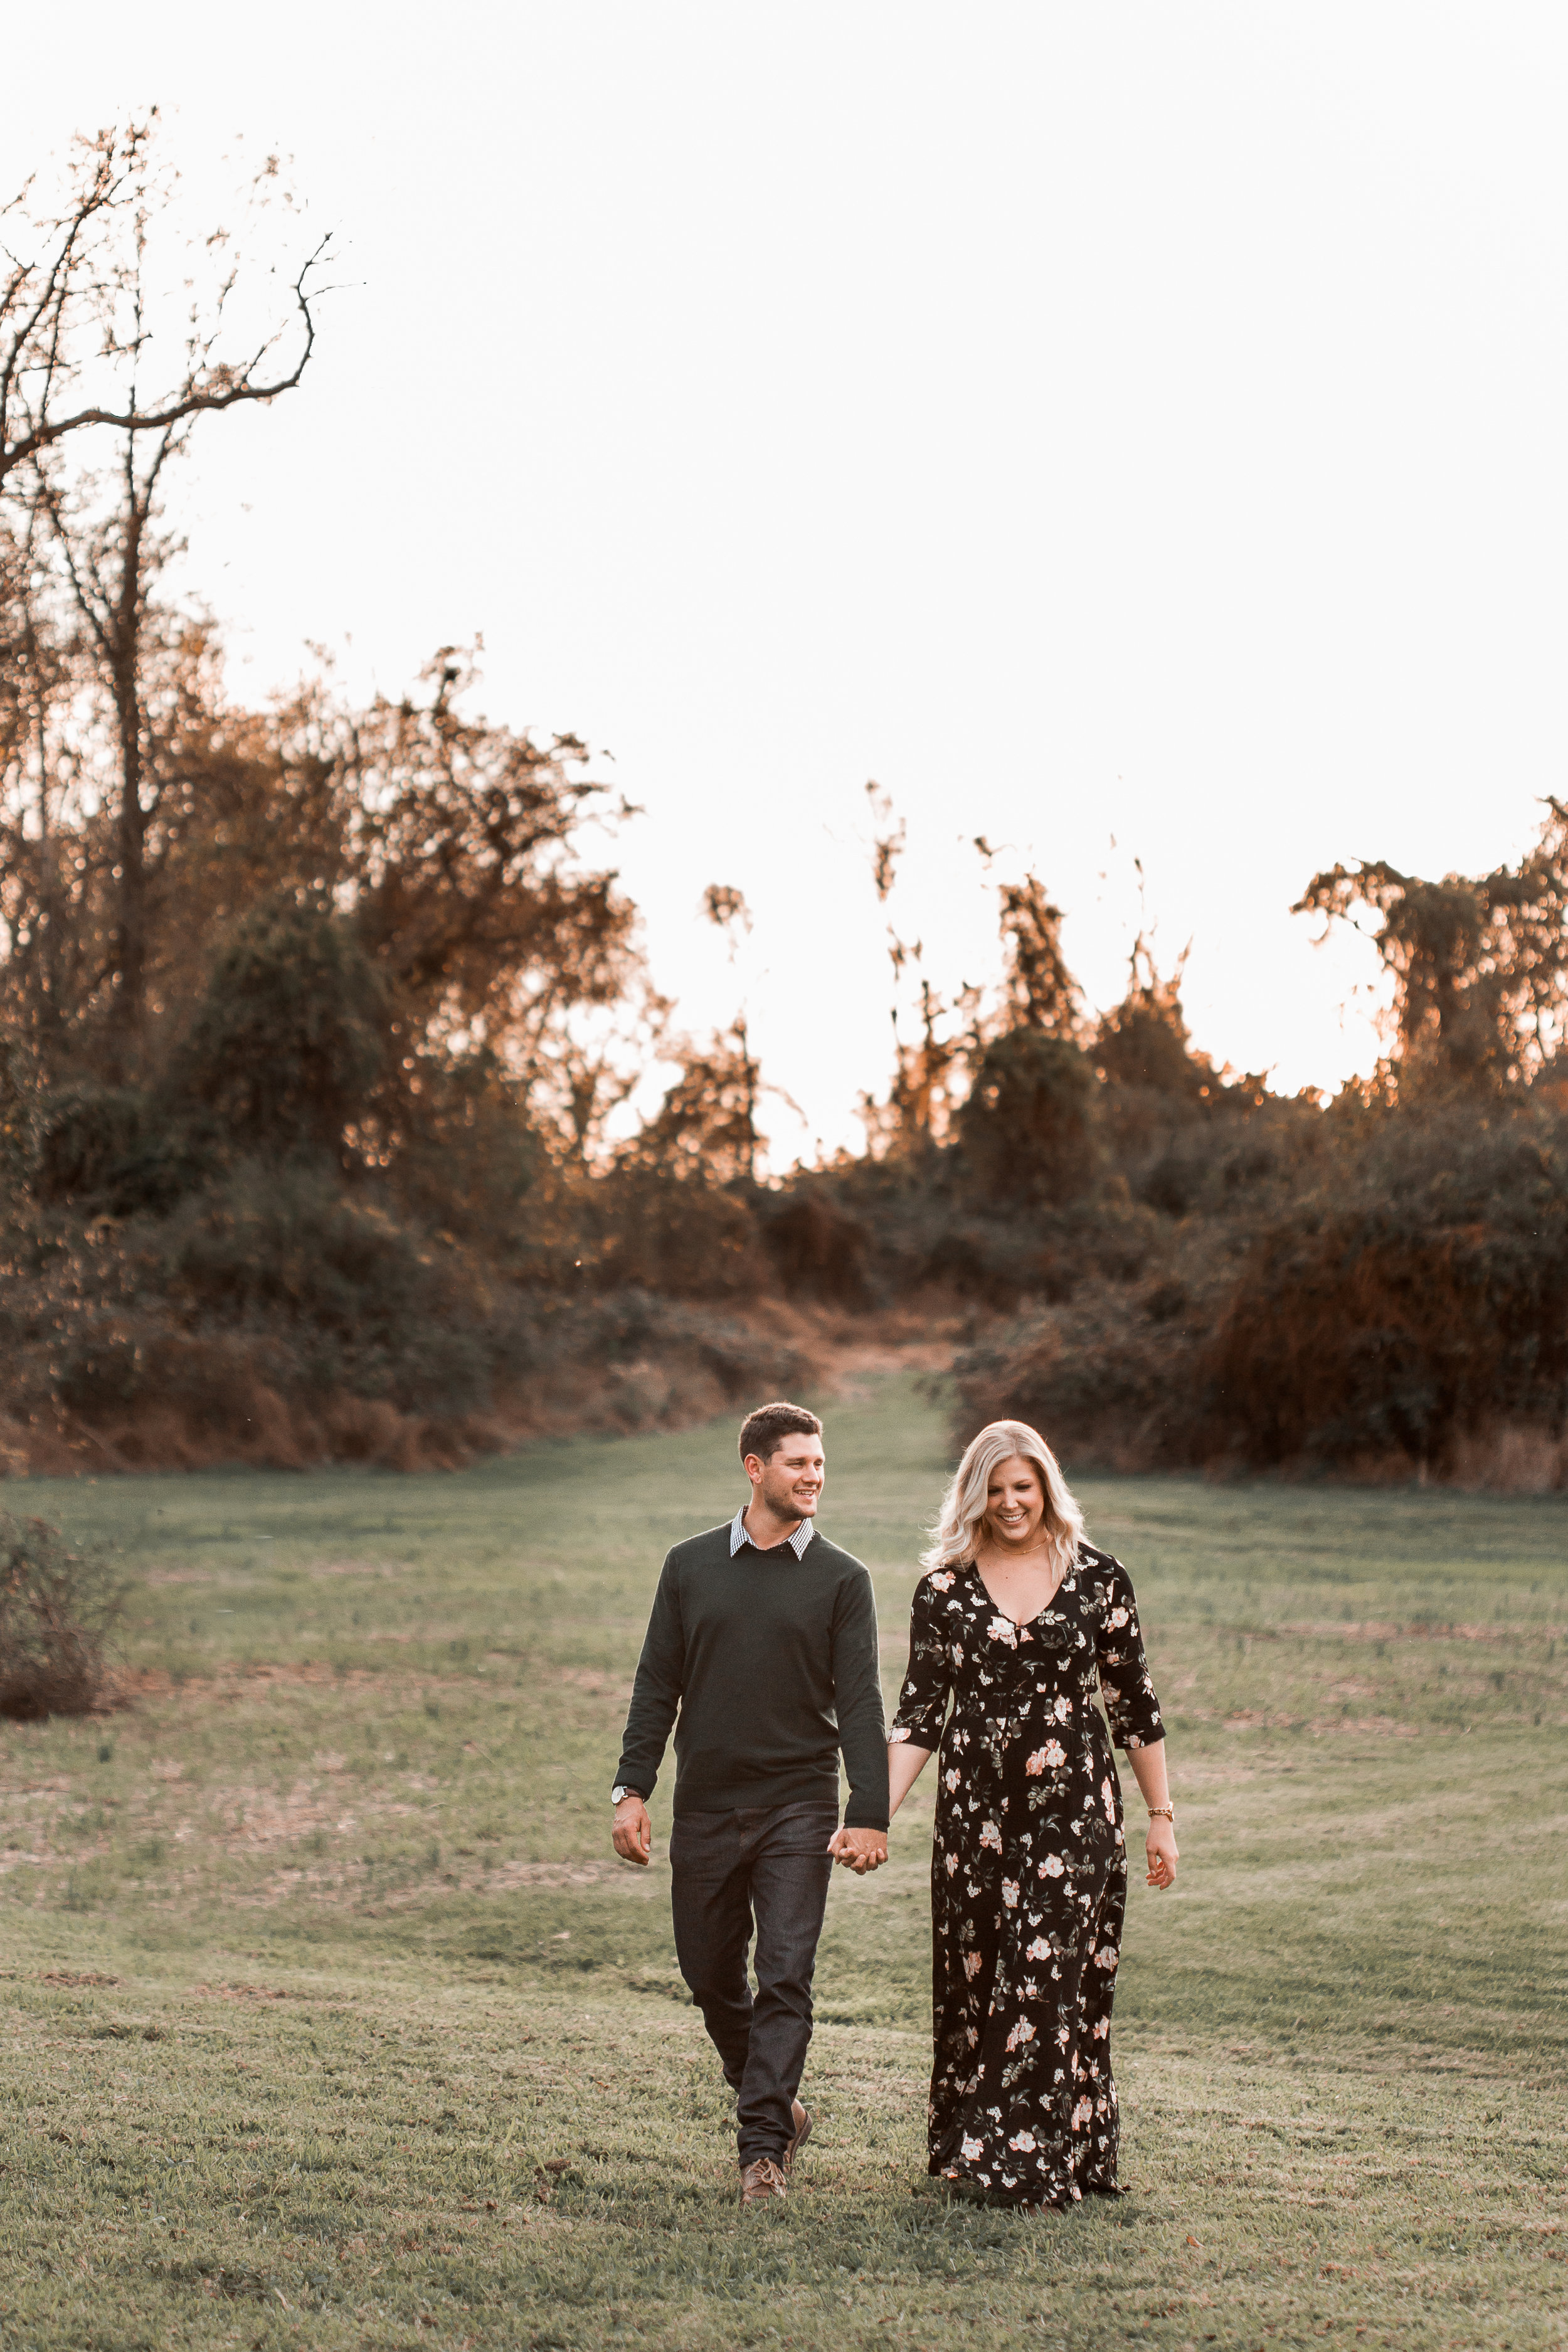 nicole-daacke-photography-carefree-bohemian-lancaster-pa-pennsylvania-engagement-photos-engagement-session-golden-sunset-adventure-session-in-lancaster-pa-lancaster-pa-outdoor-wedding-photographer-2.jpg